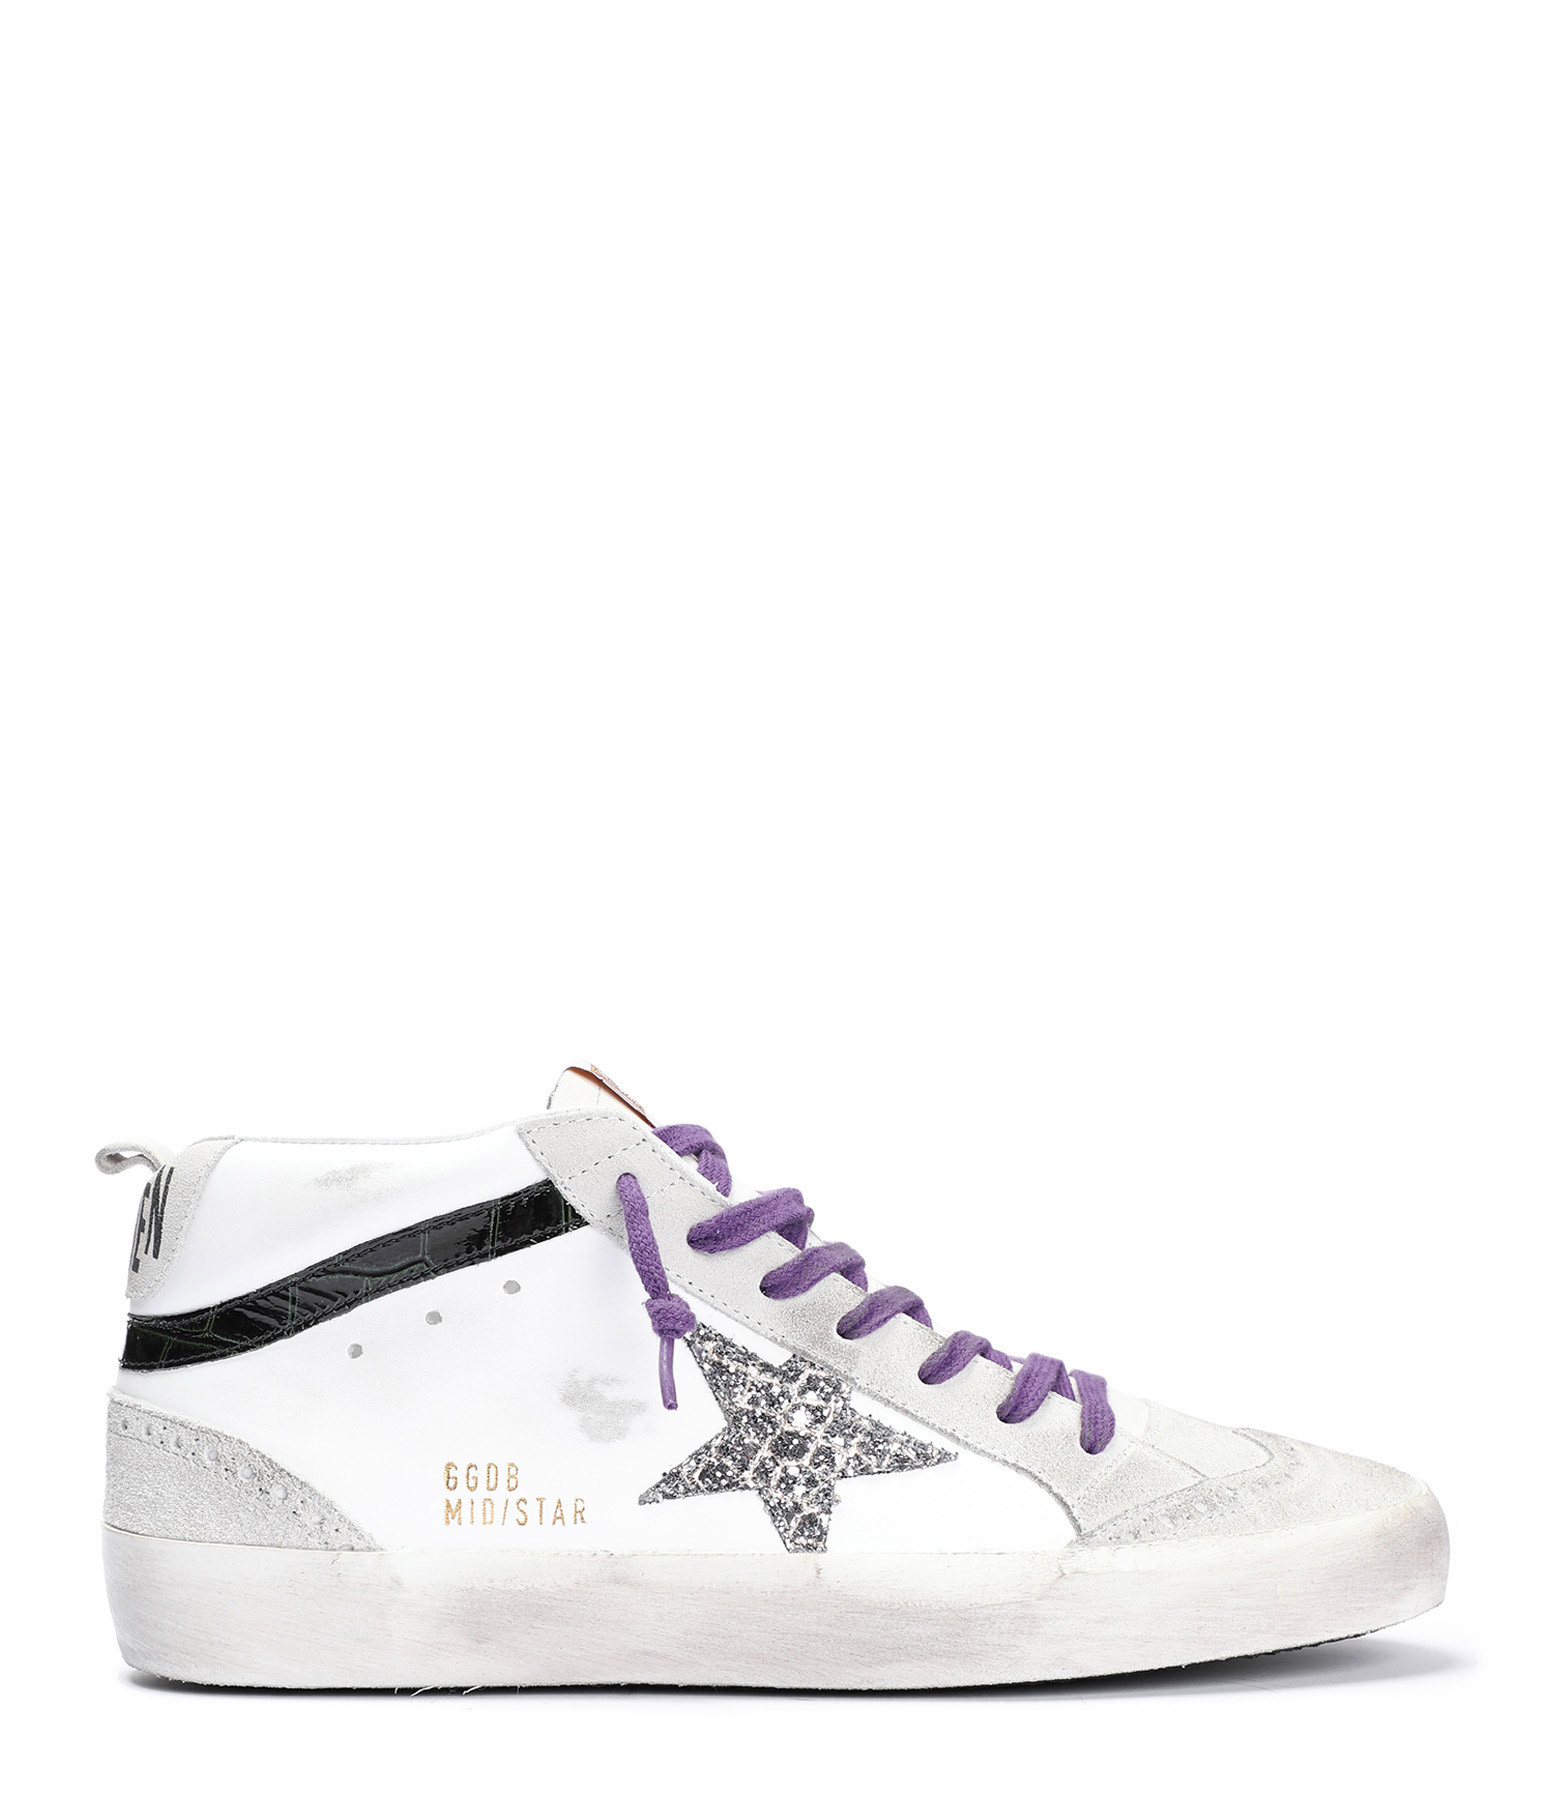 Baskets Mid Star Paillettes Cuir Blanc